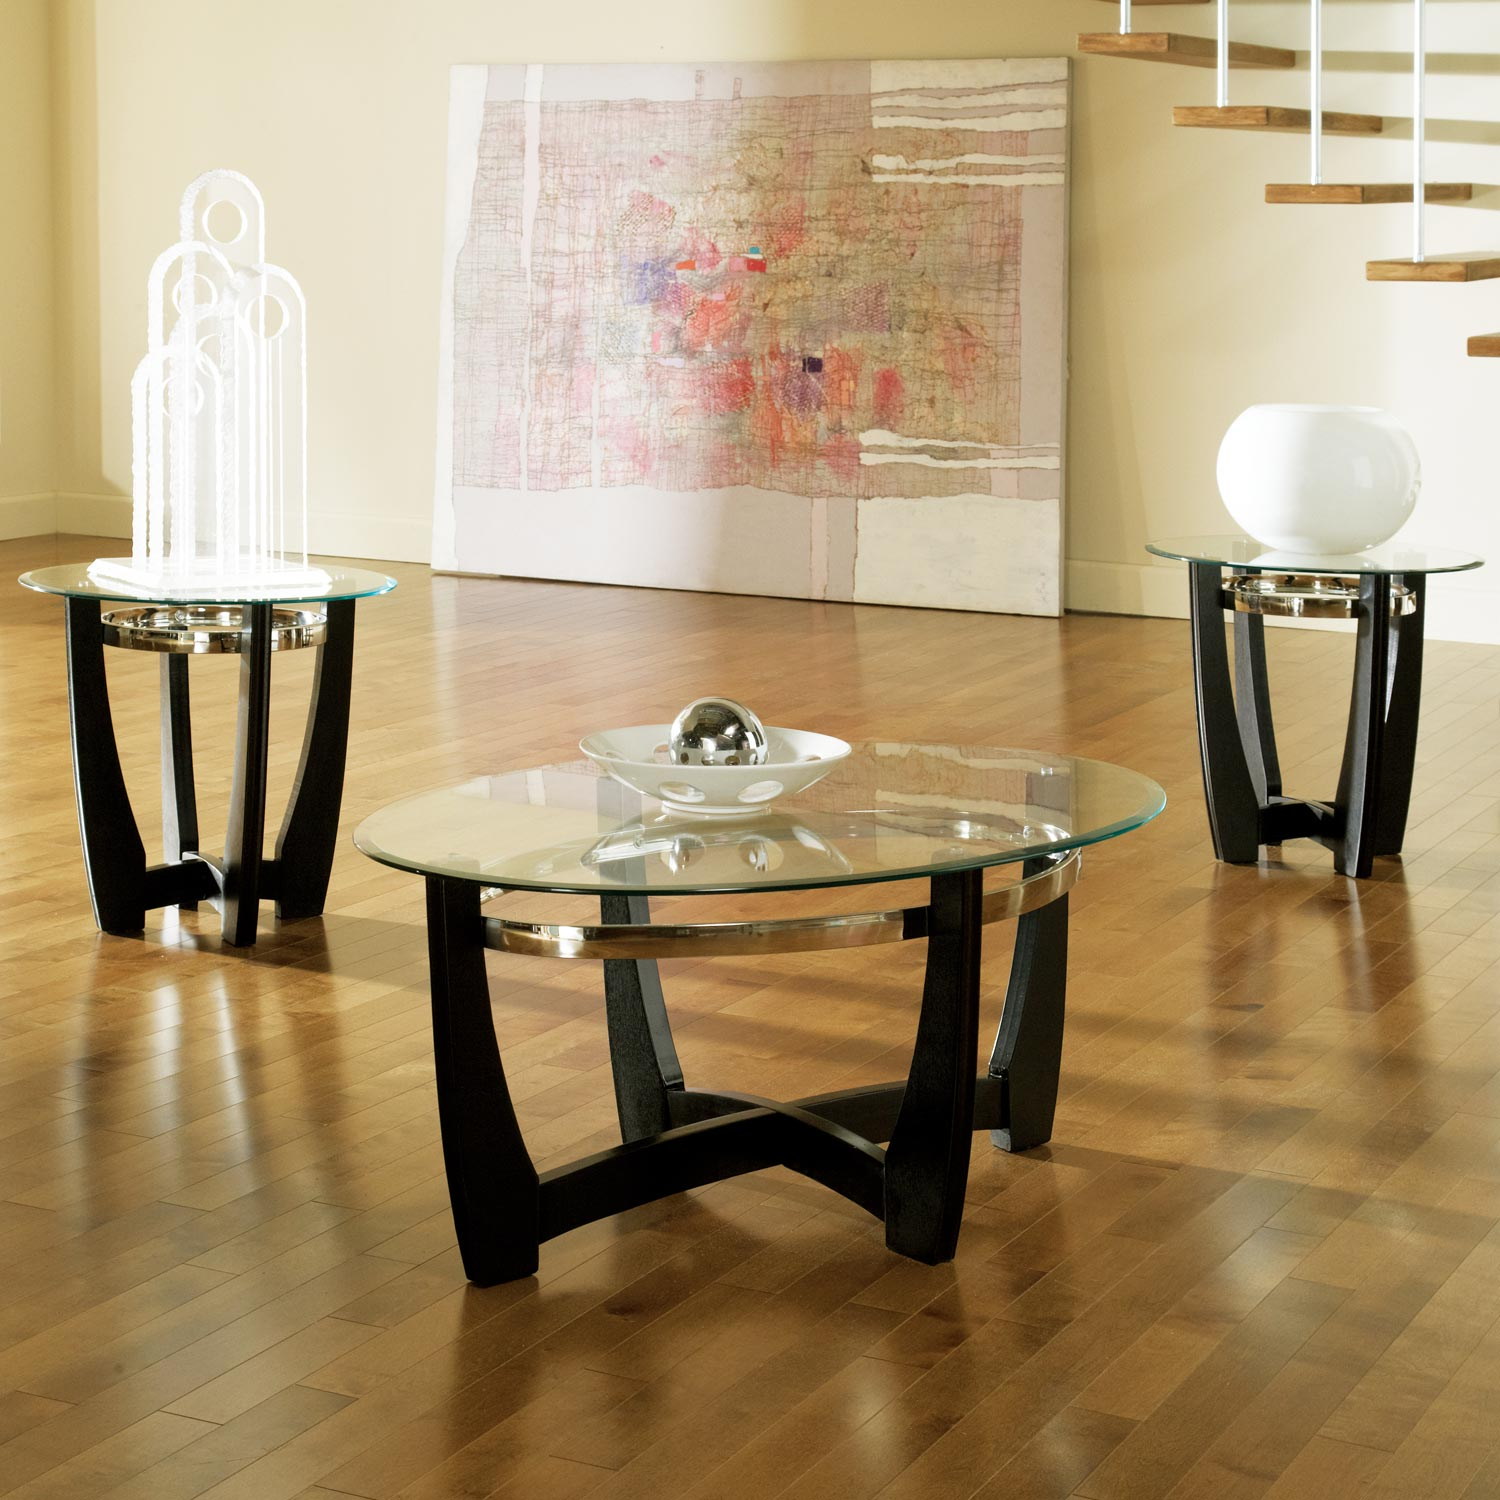 Matinee Modern Occasional Tables Set - Clear Glass, Black Base - SSC-MT2000T-MT2000B